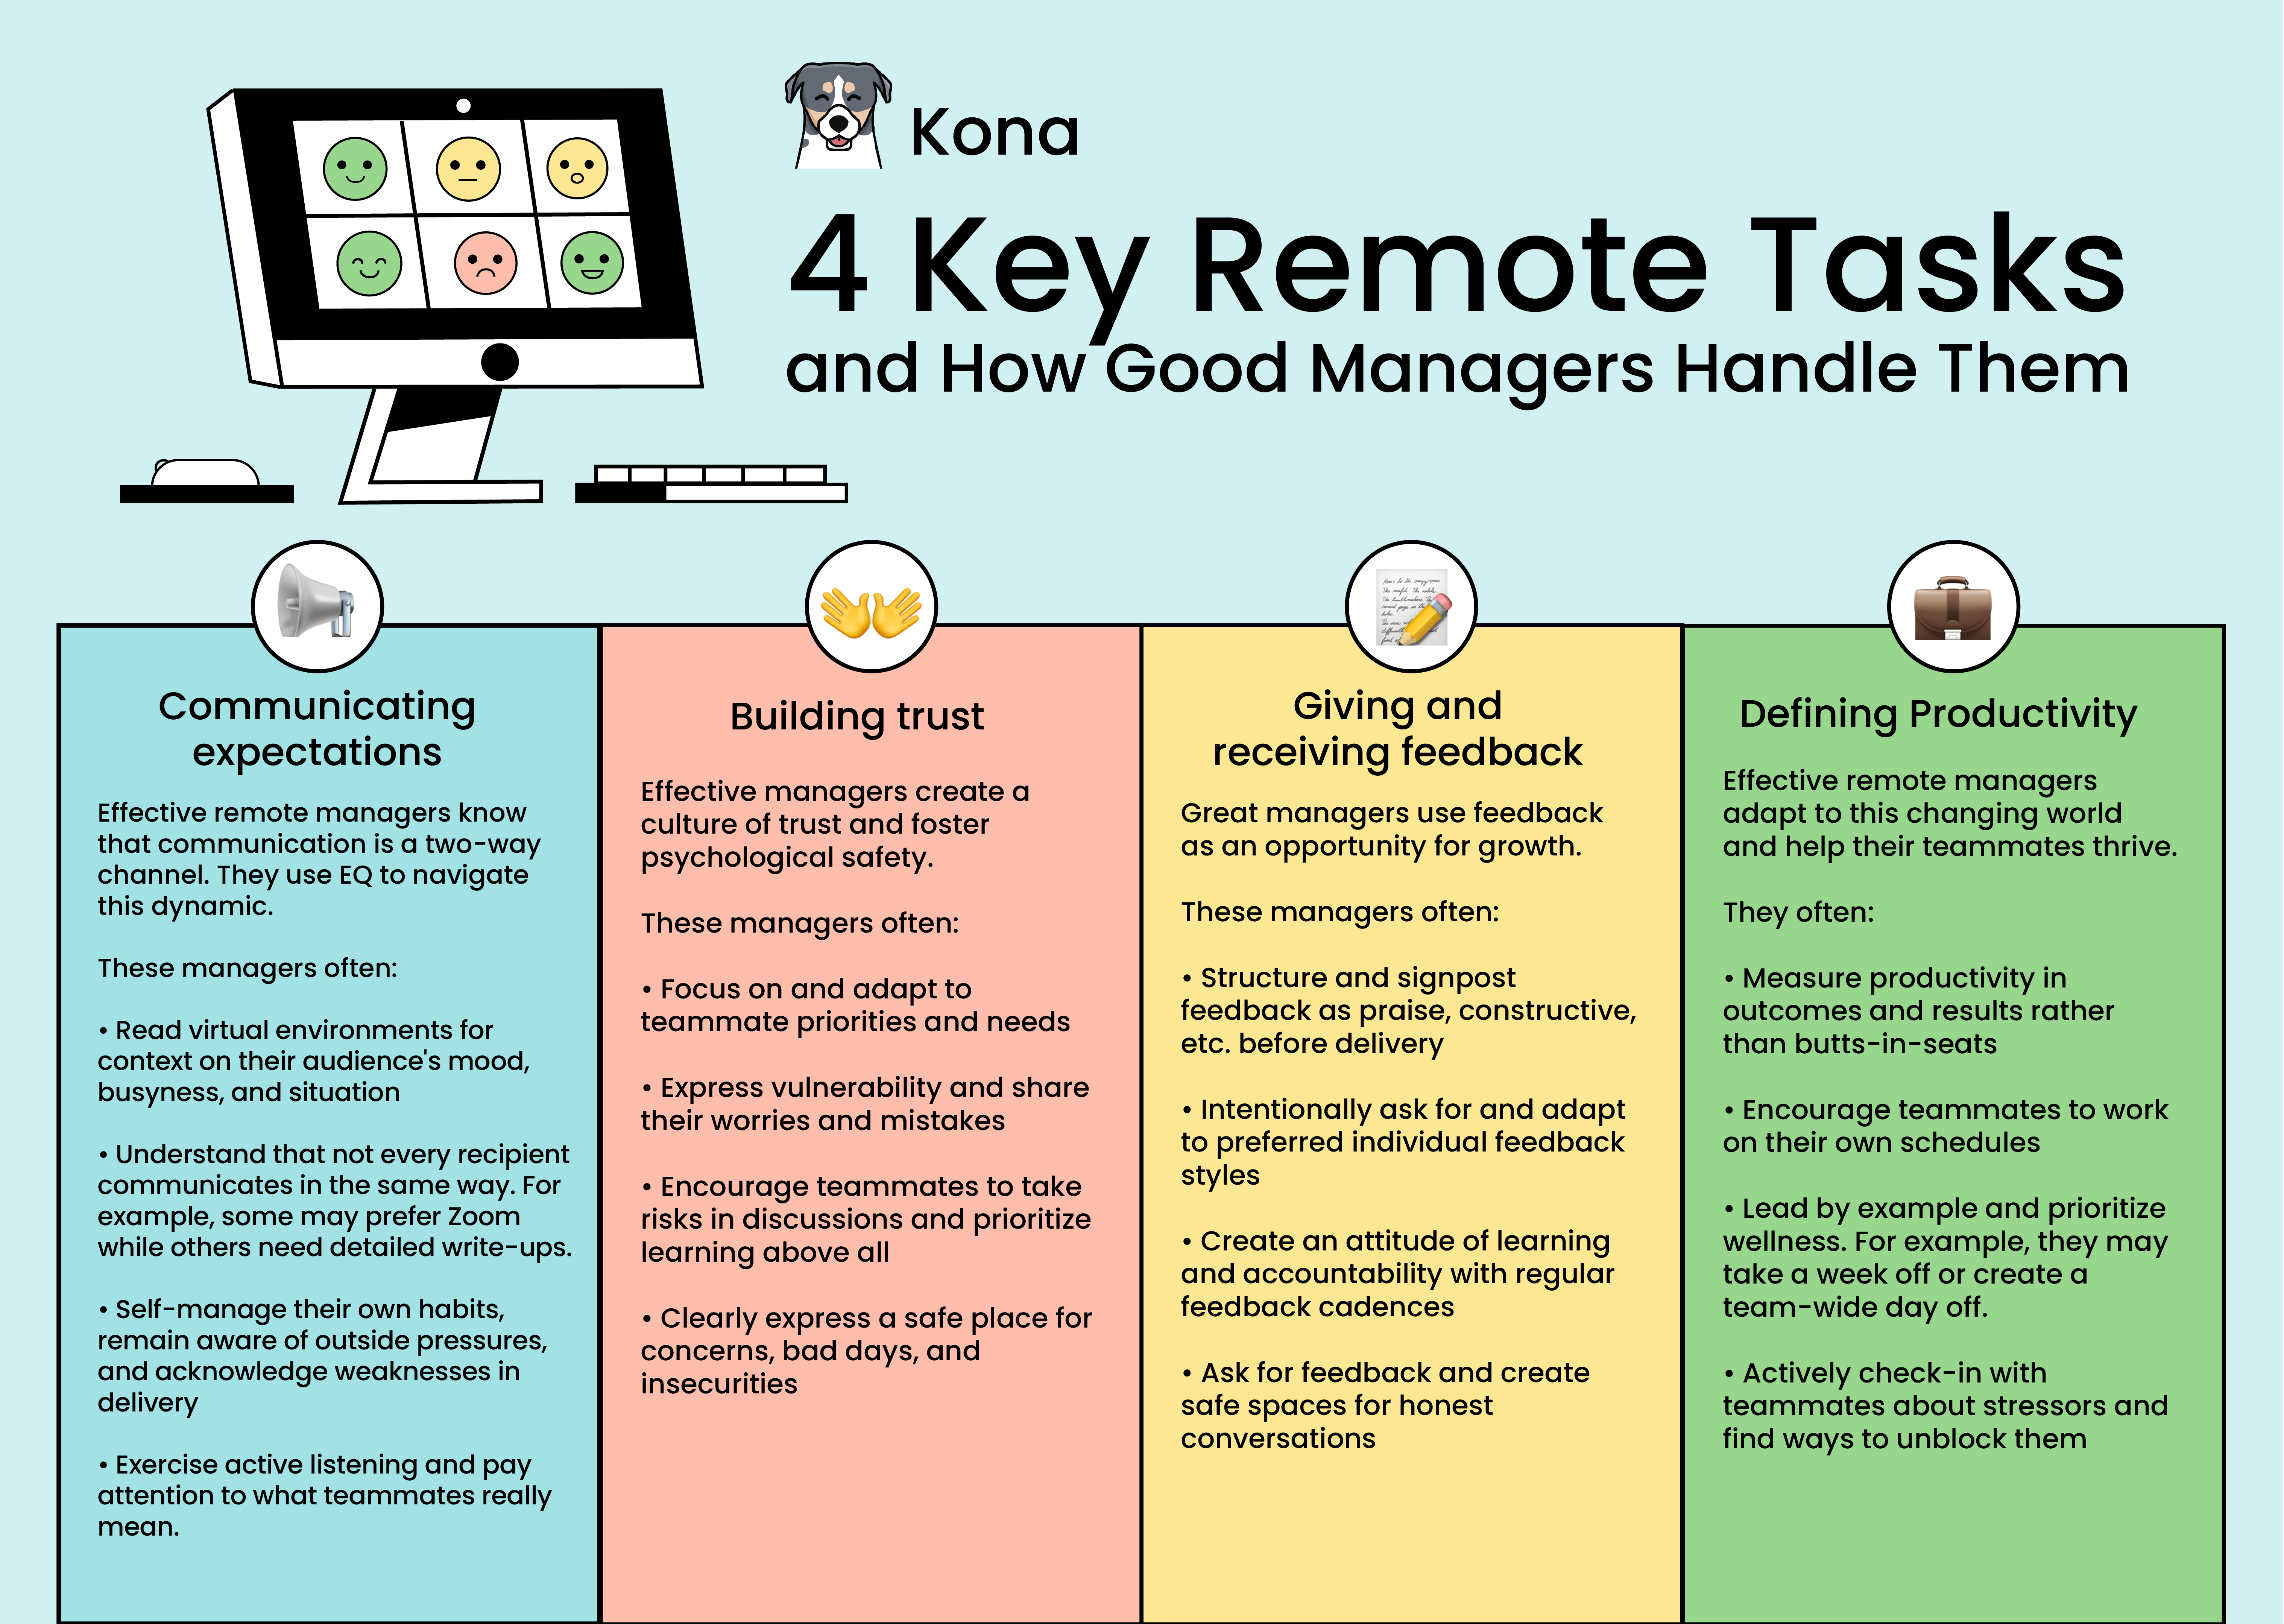 A colorful infographic on 4 key remote tasks that good managers do.